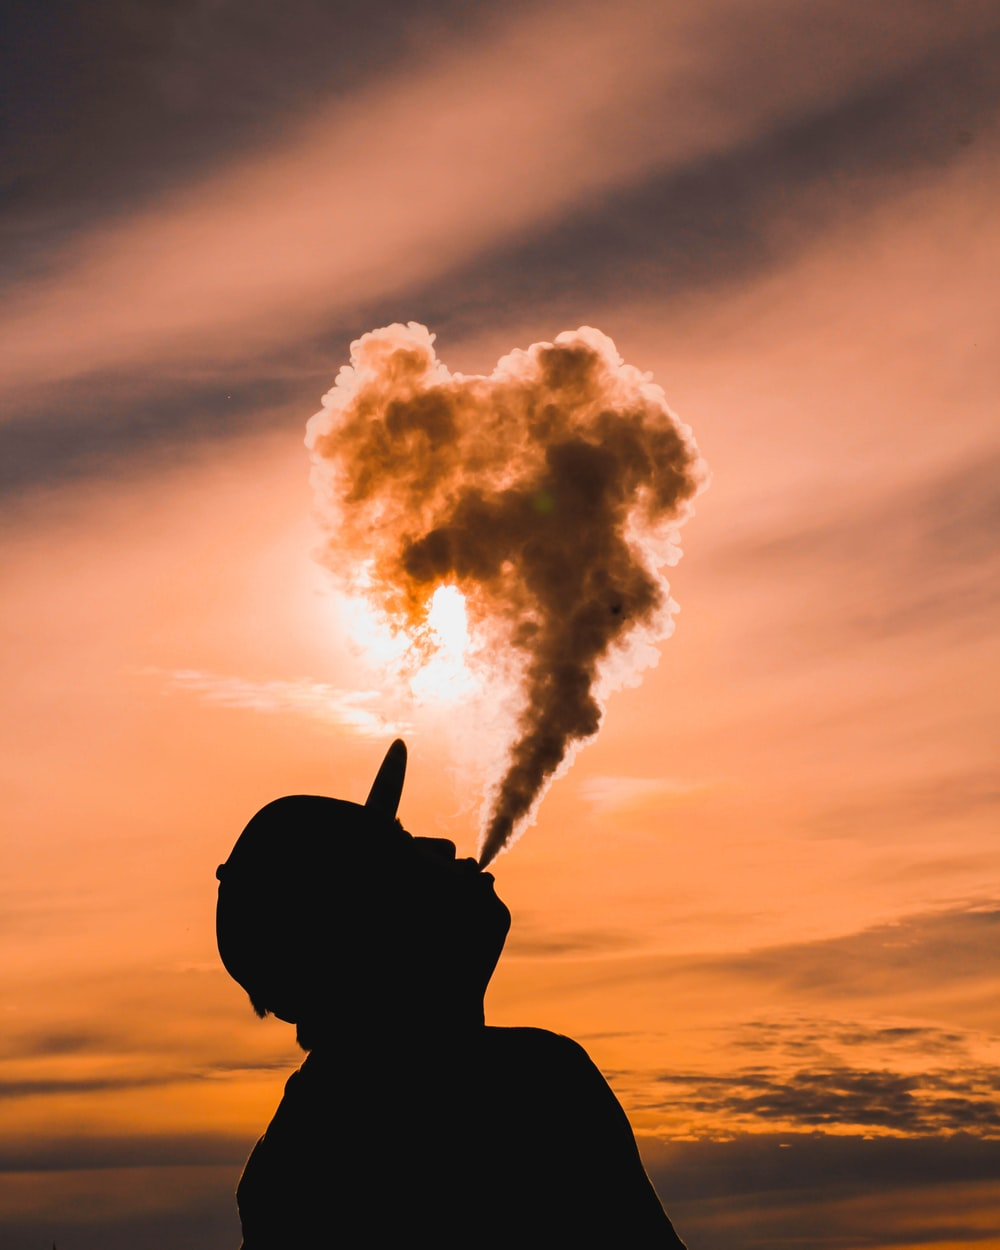 silhouette of man vaping during sunset